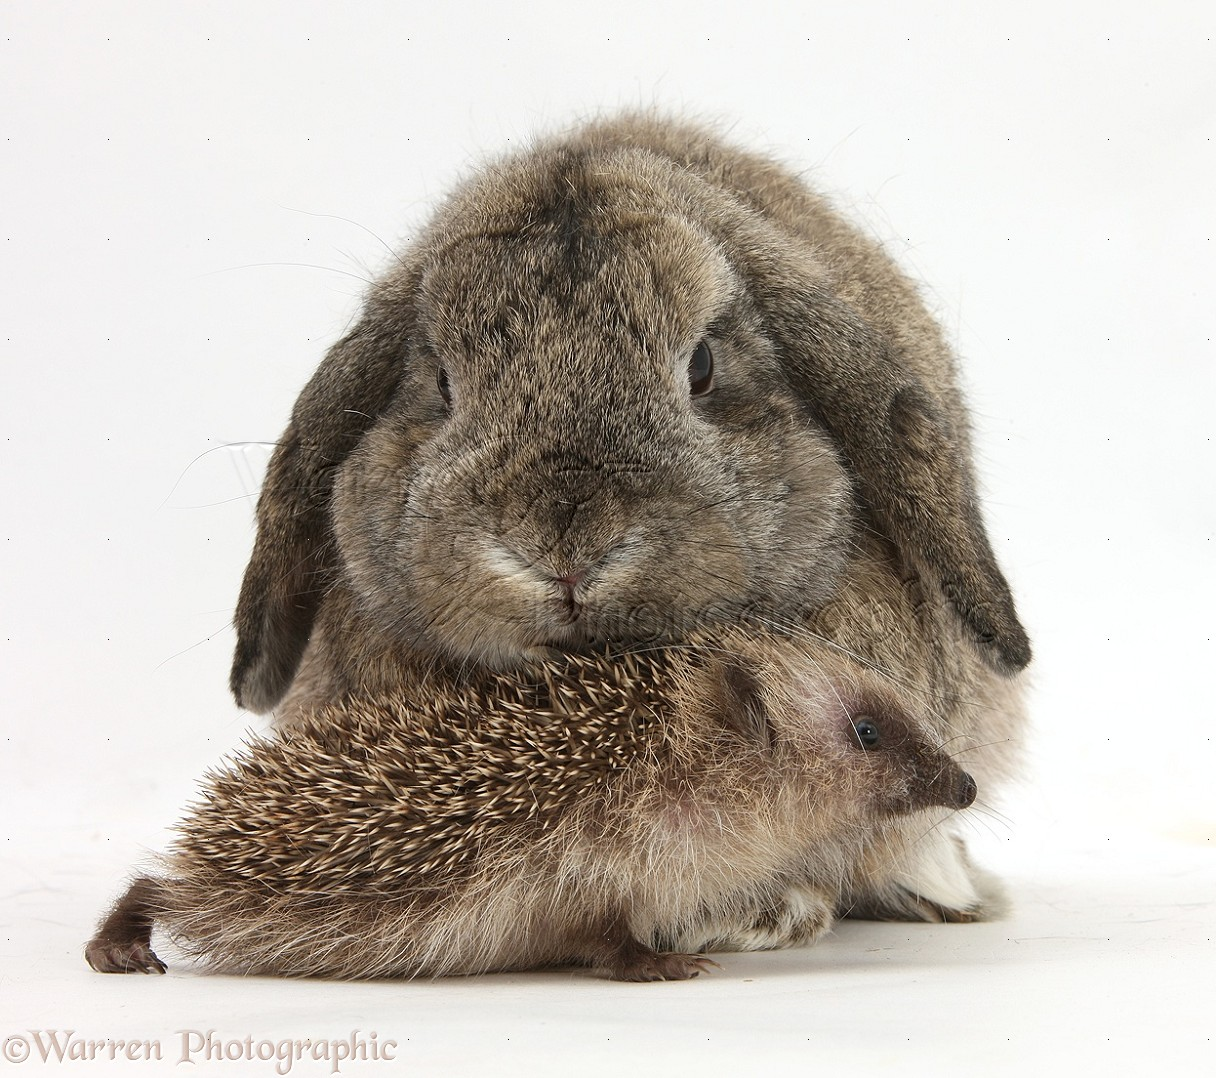 Baby Hedgehog and agouti Lop rabbit photo WP32945